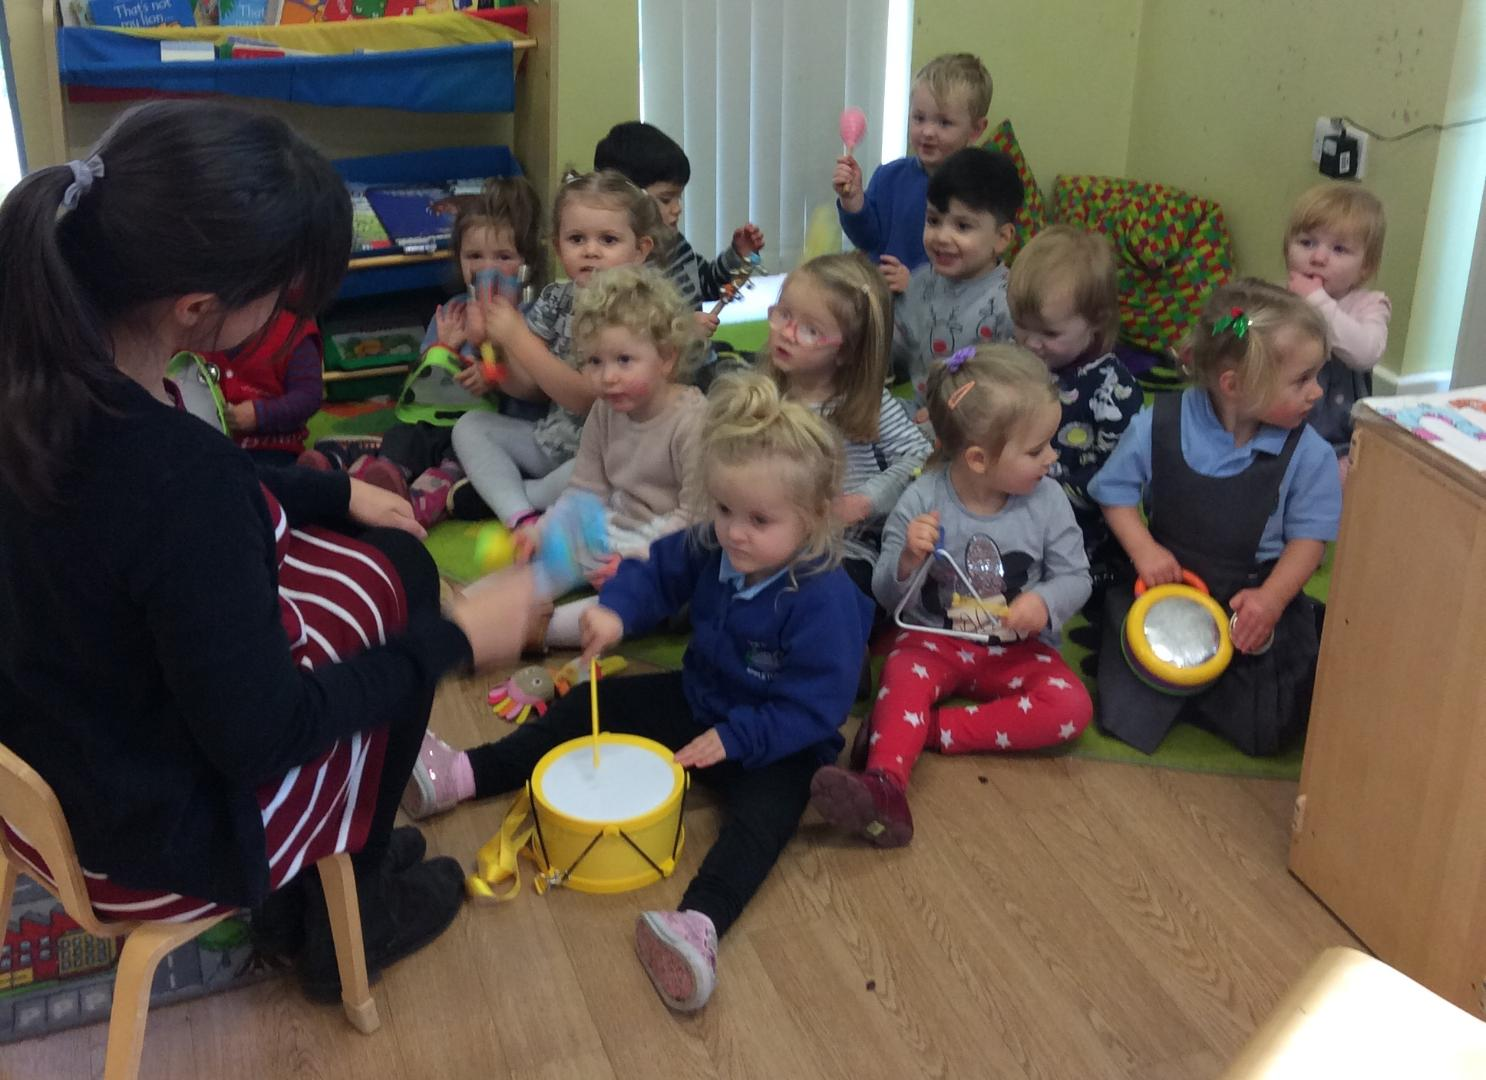 A Typical Day in Cygnets - Whole Group Activity (Musical Instruments)